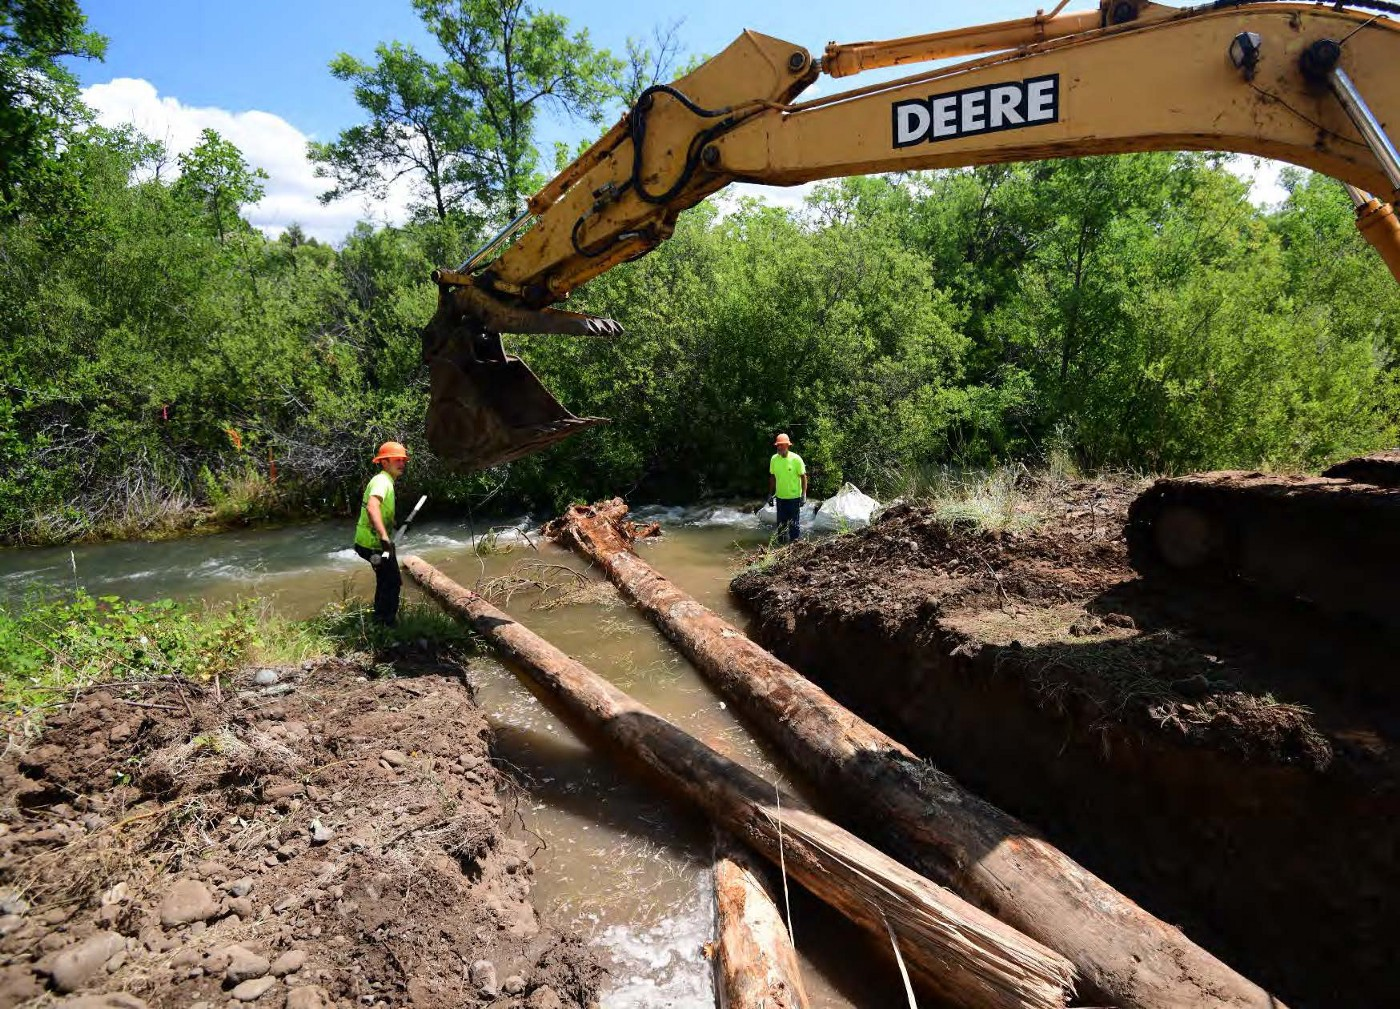 A large excavator puts big pieces of woody debris into the river